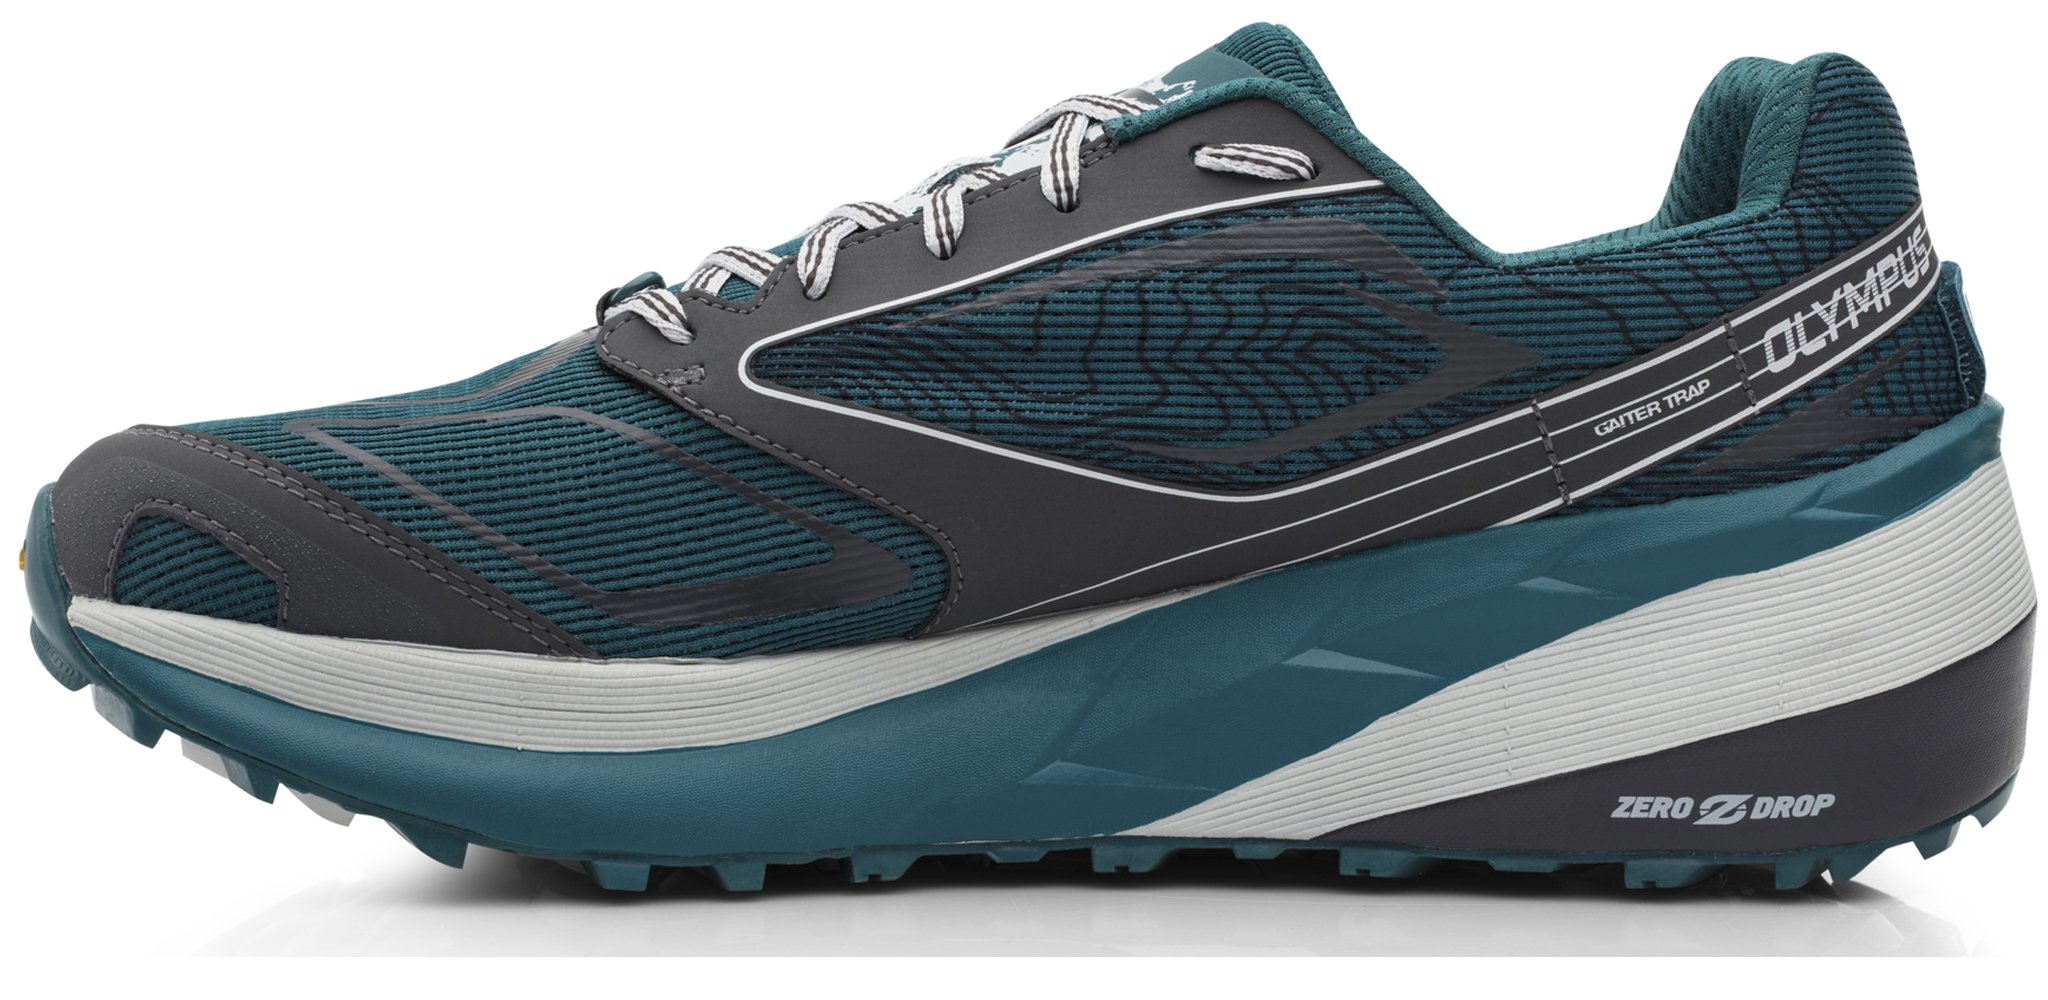 Altra AFM1859F Men's Olympus 3 Running Shoe, Green - 11 D(M) US by Altra (Image #2)